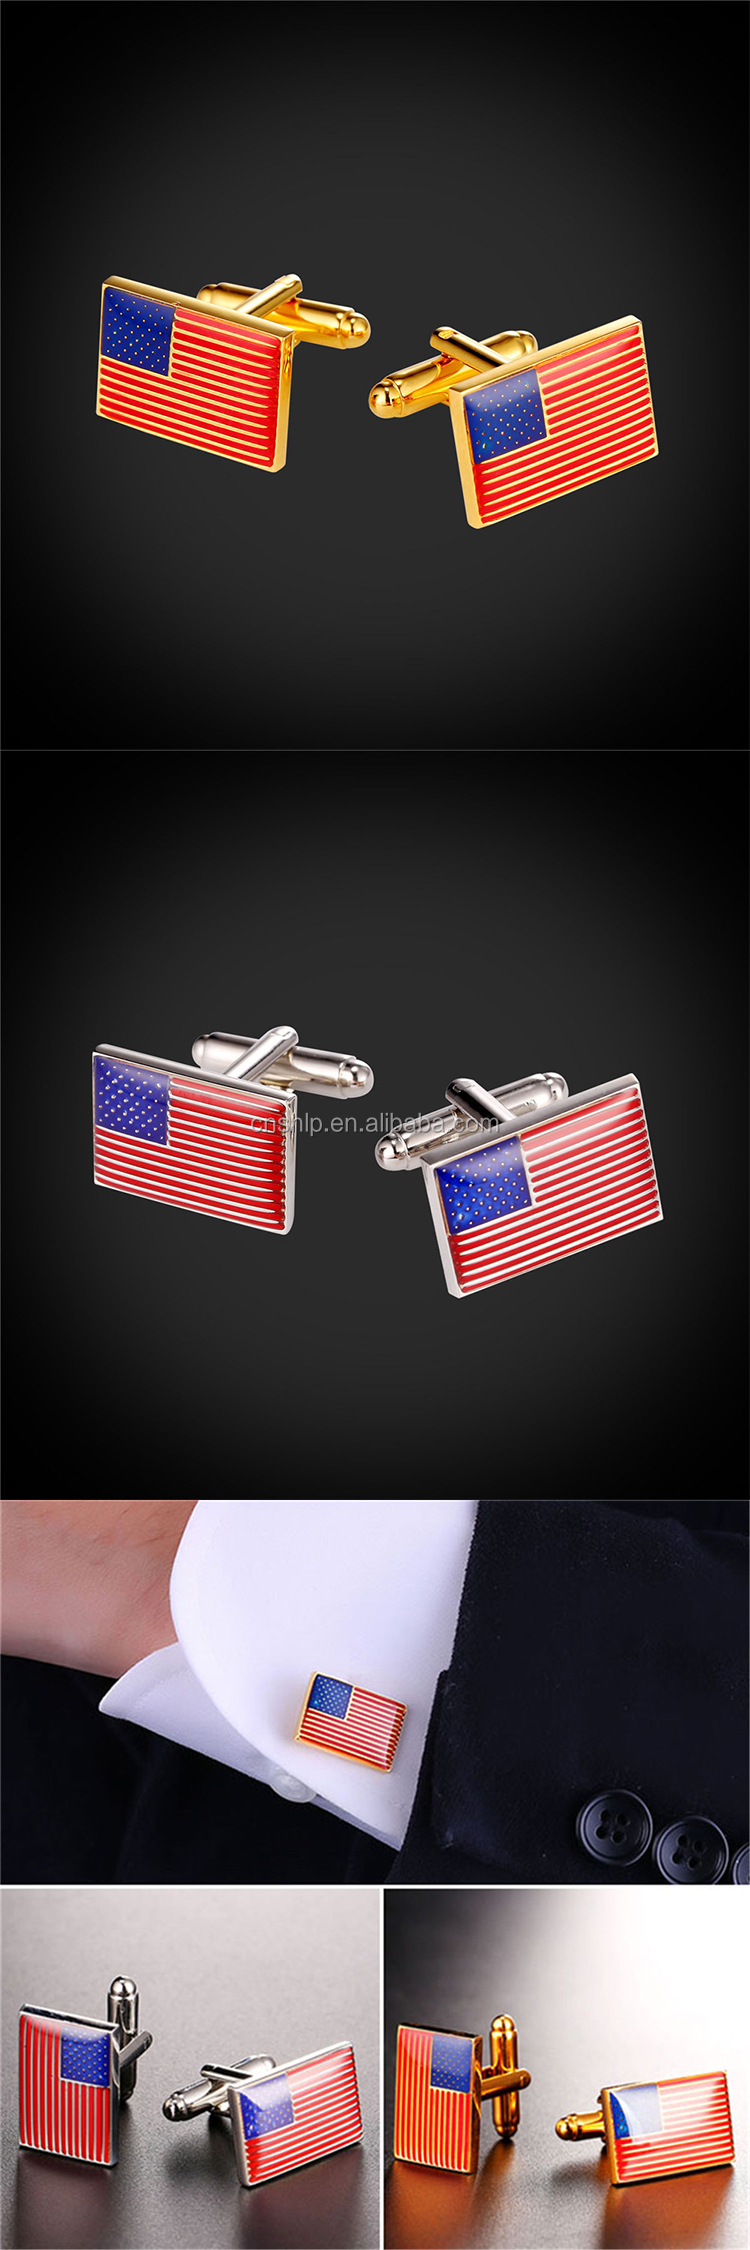 Wholesale high quality enamel America flag cufflinks with epoxy dome